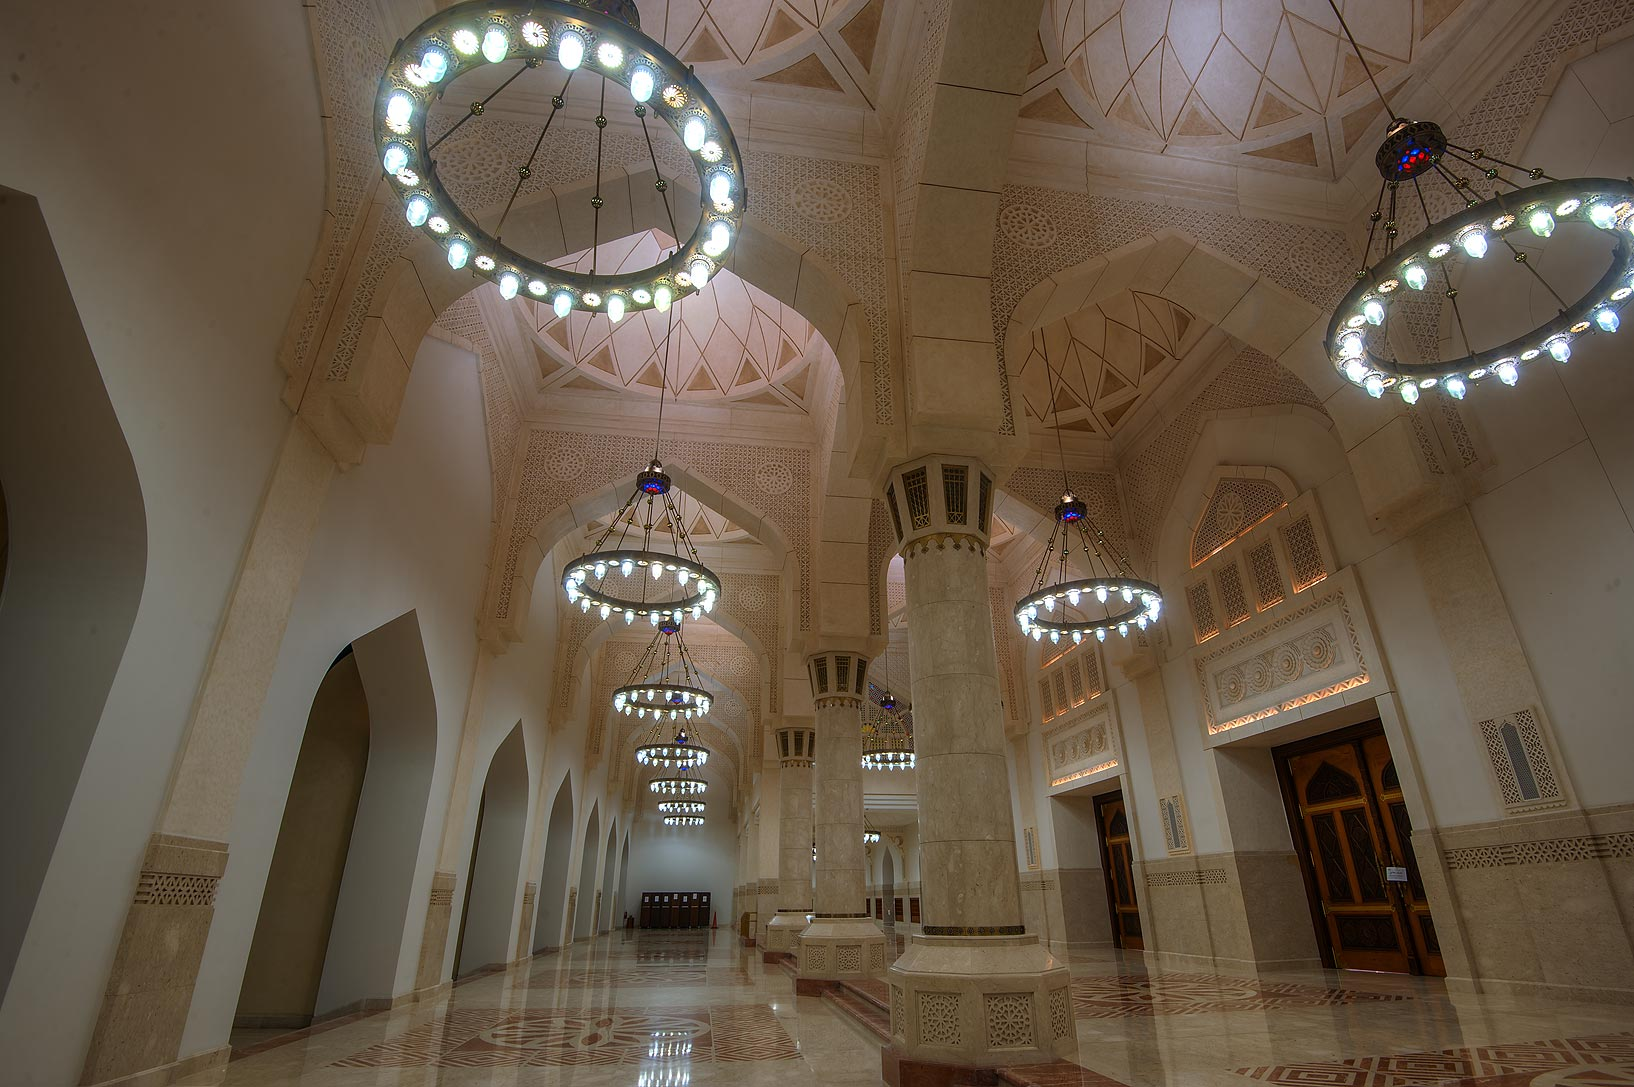 Gallery of State Mosque (Sheikh Muhammad Ibn Abdul Wahhab Mosque). Doha, Qatar